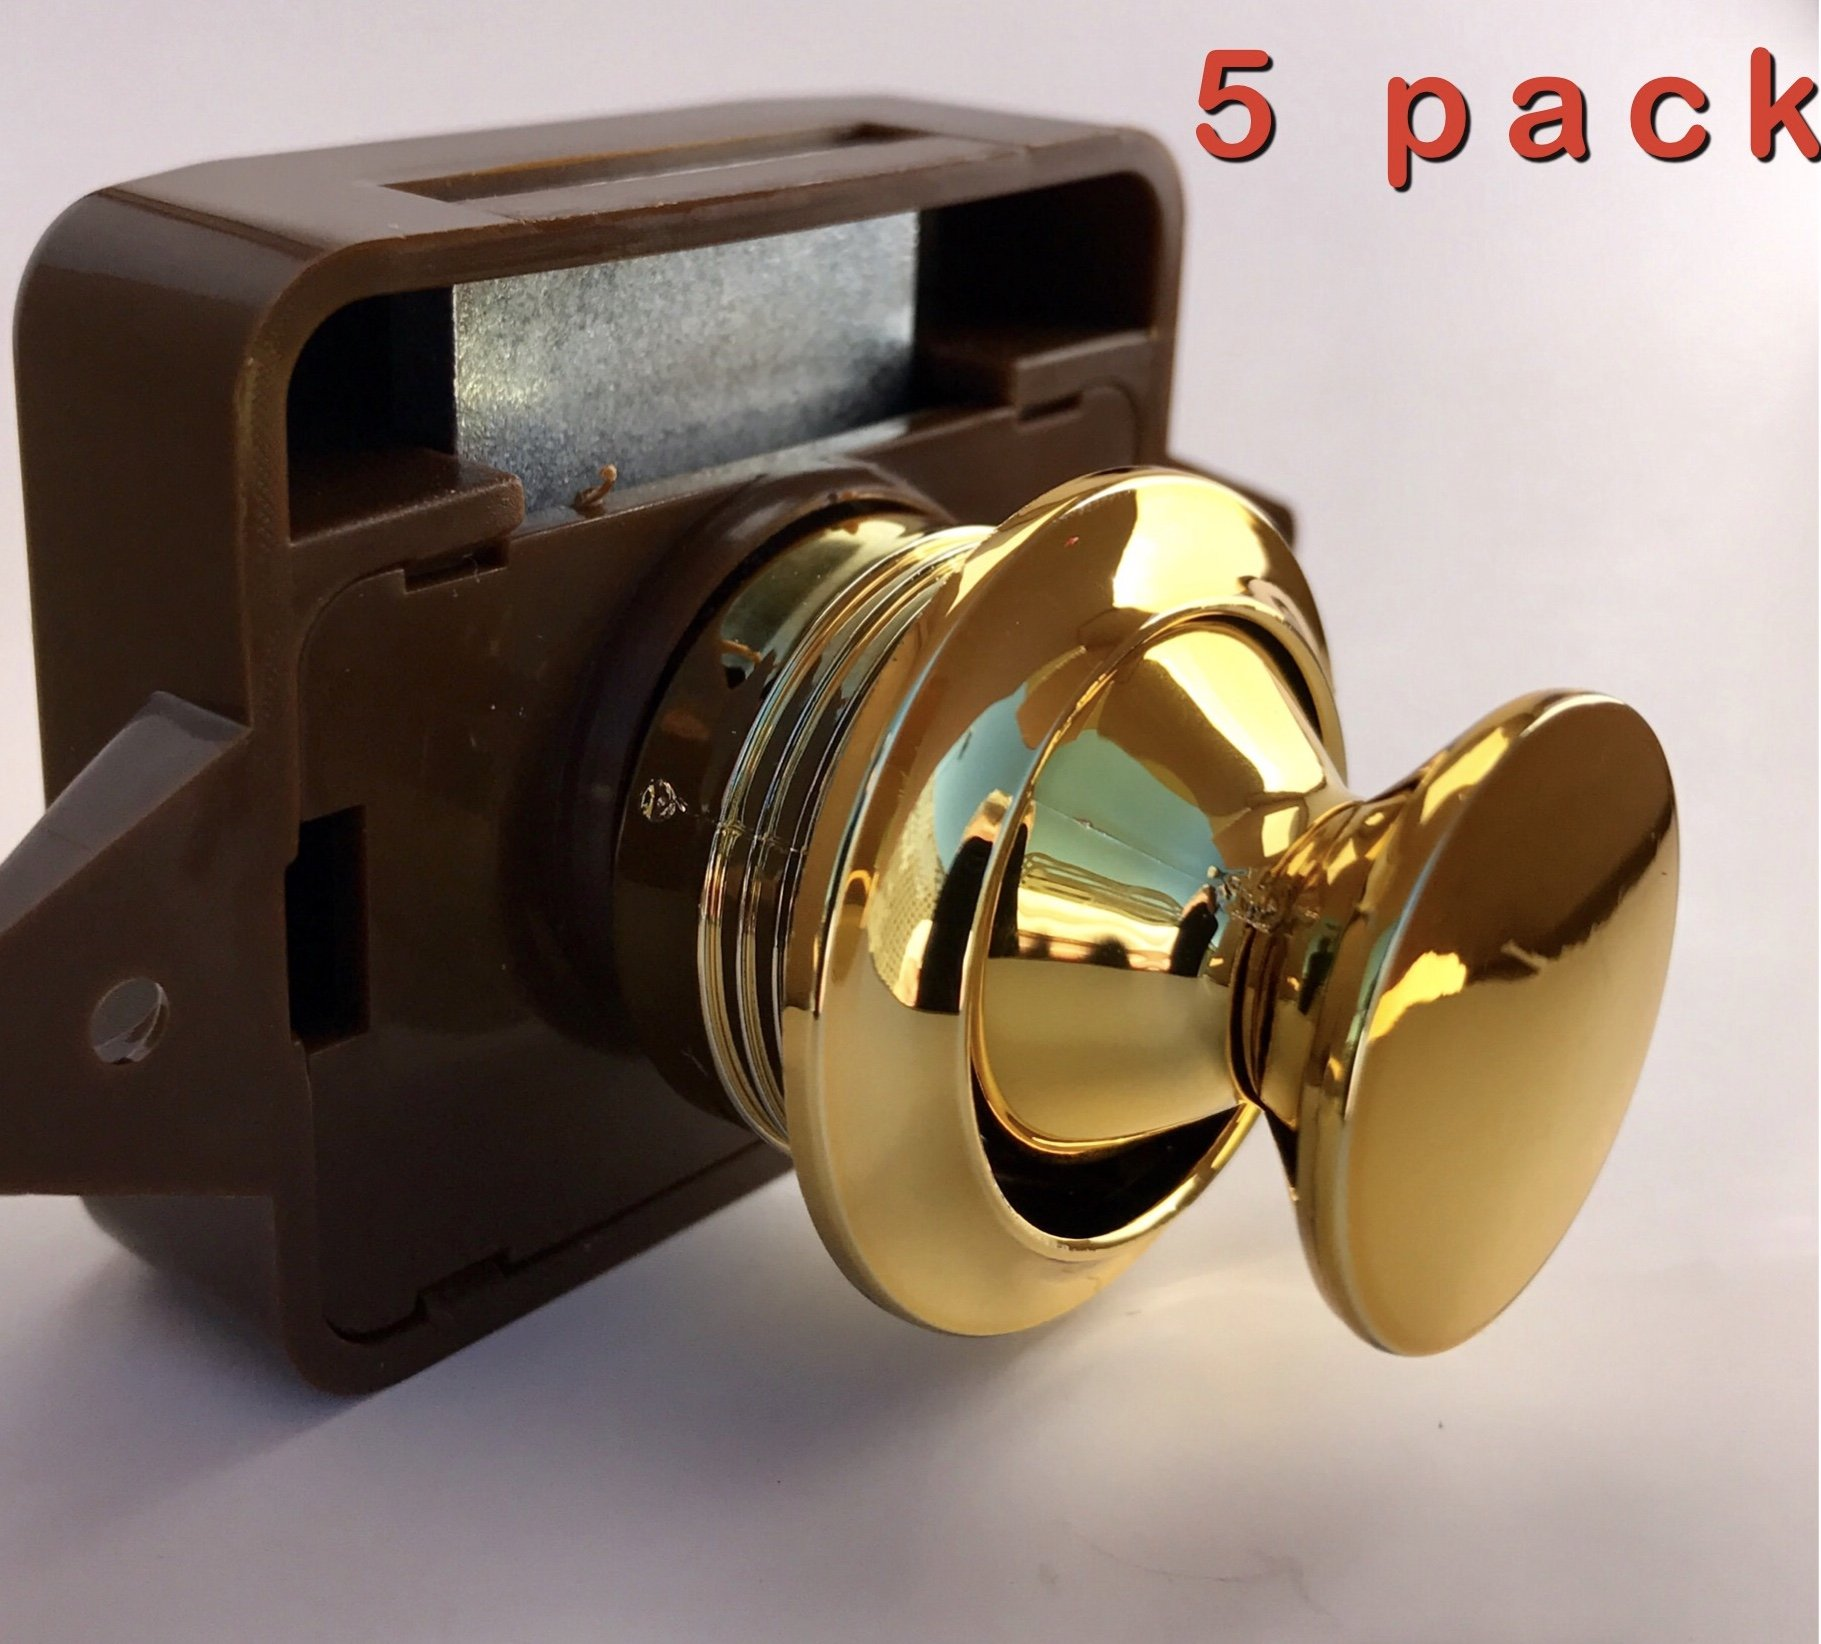 AMT Package of Five Cabinet Lock Keyless Push Button Cabinet Latch for Rv/Motor Home, Cupboard, cabinets and Doors (Gold)